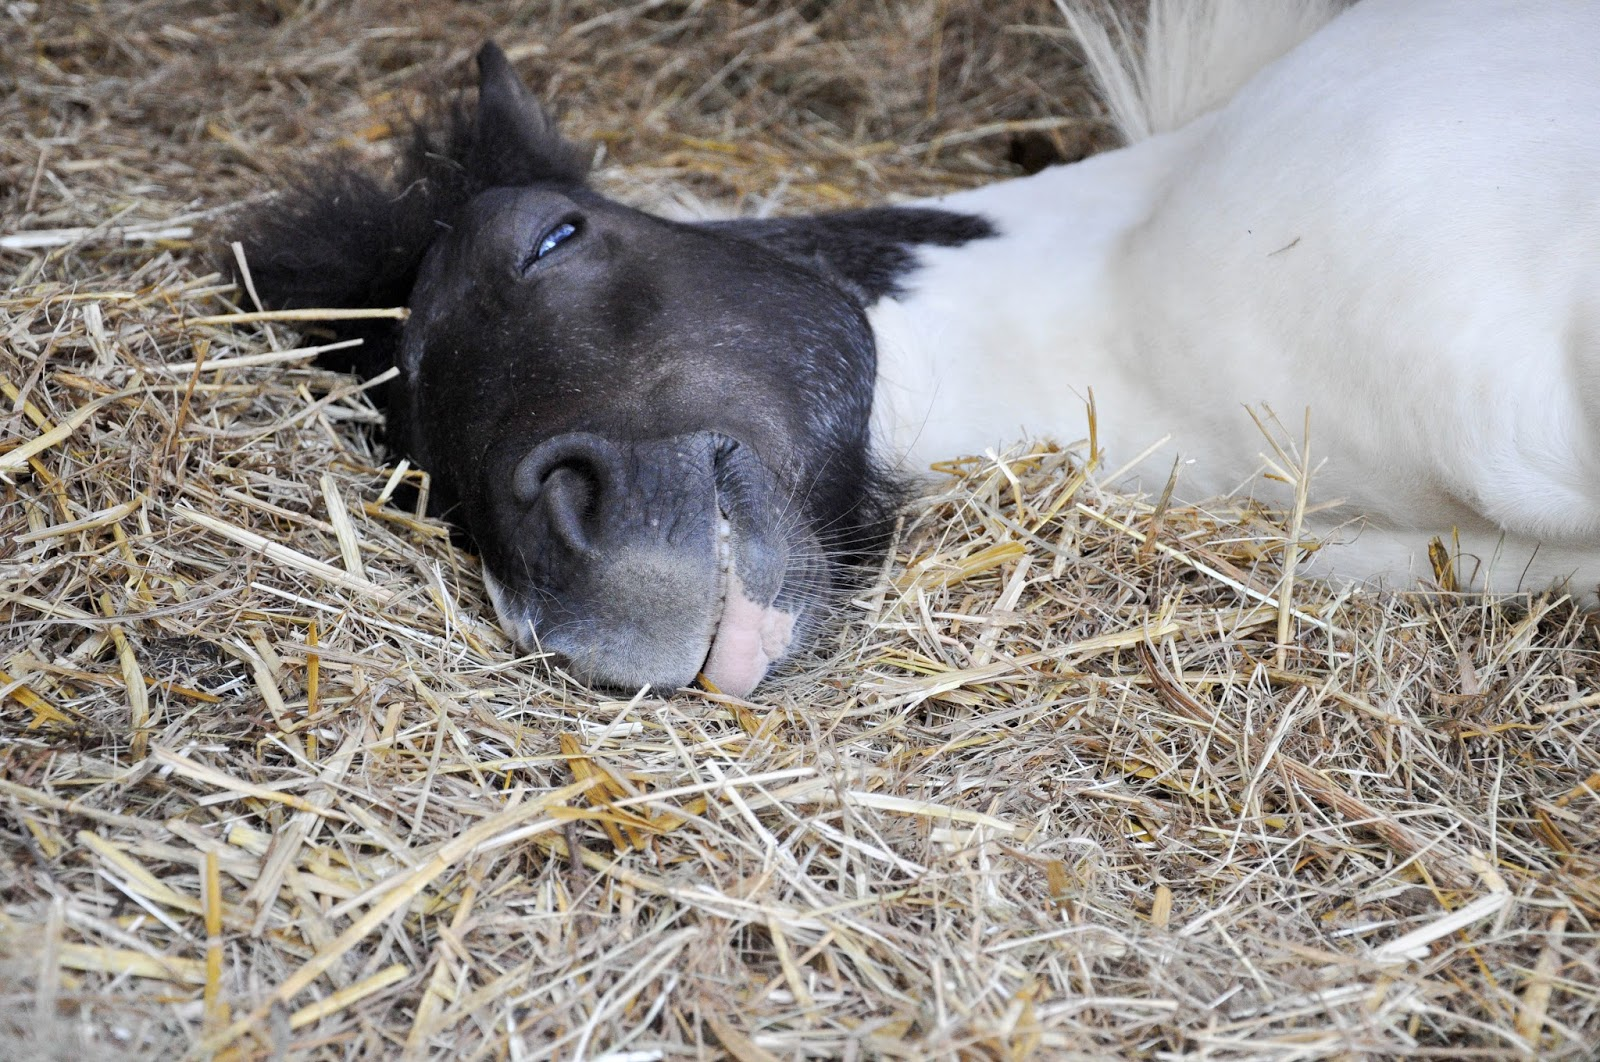 Tinker the Shetland Pony, The Garlic Farm, Isle of Wight, UK